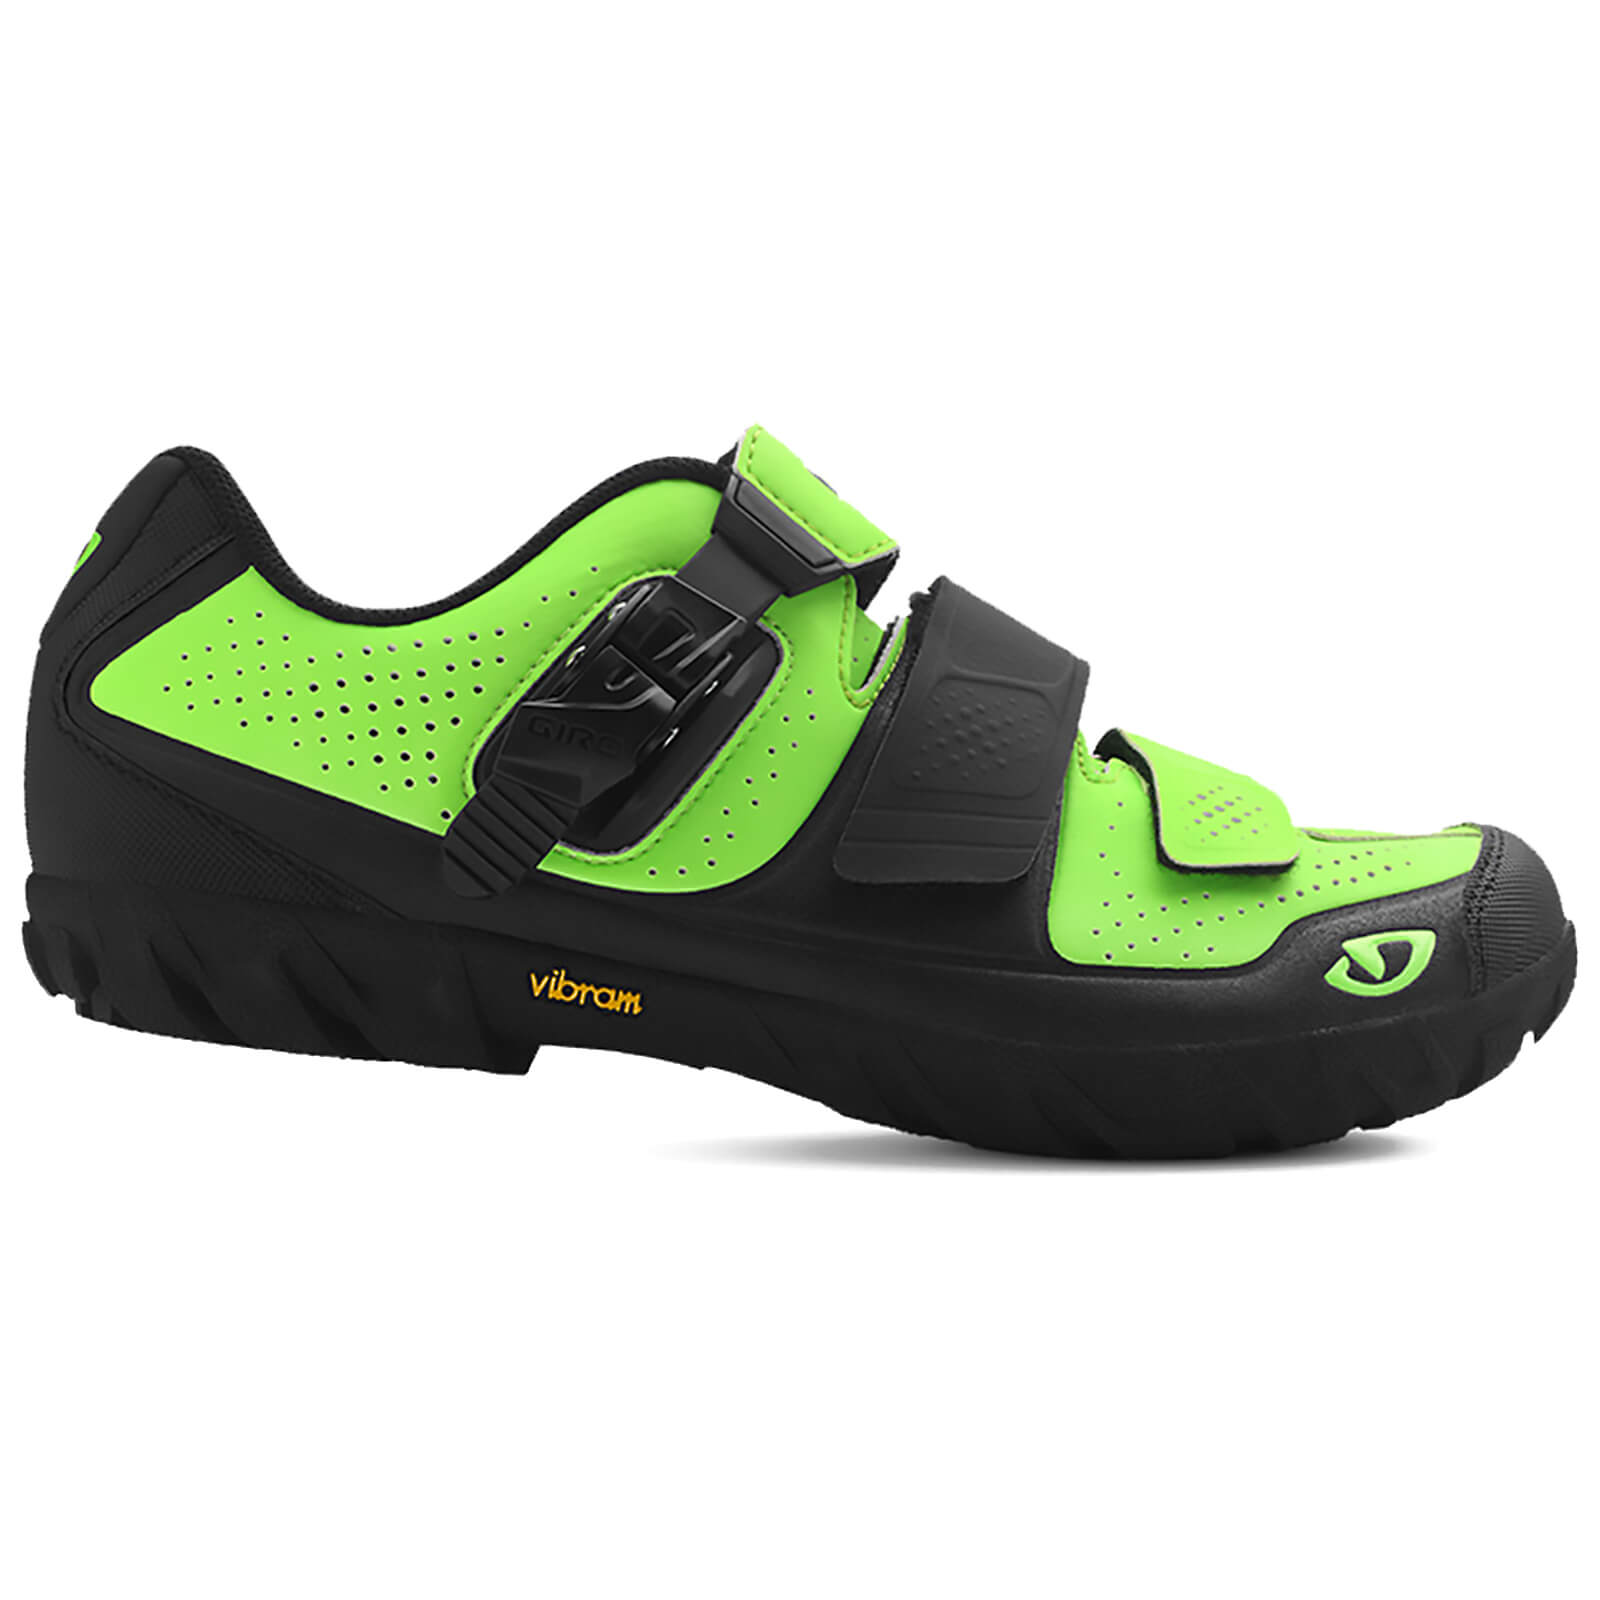 Giro Terraduro MTB Cycling Shoes - Lime/Black